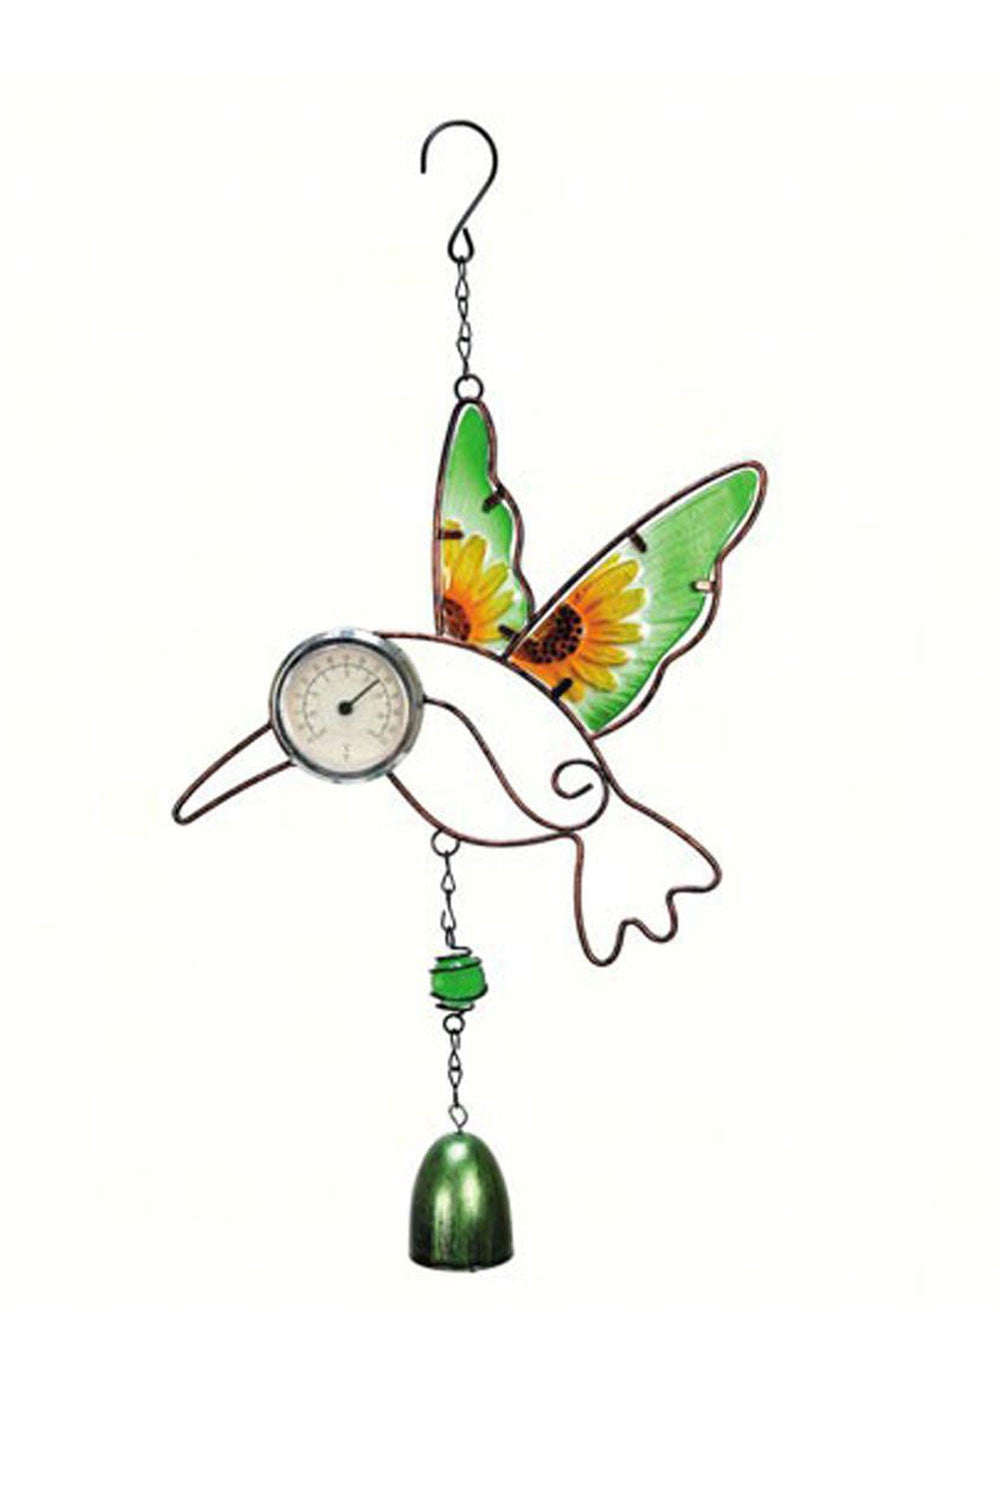 Hummingbird Critter Bell Thermometer - We Love Hummingbirds